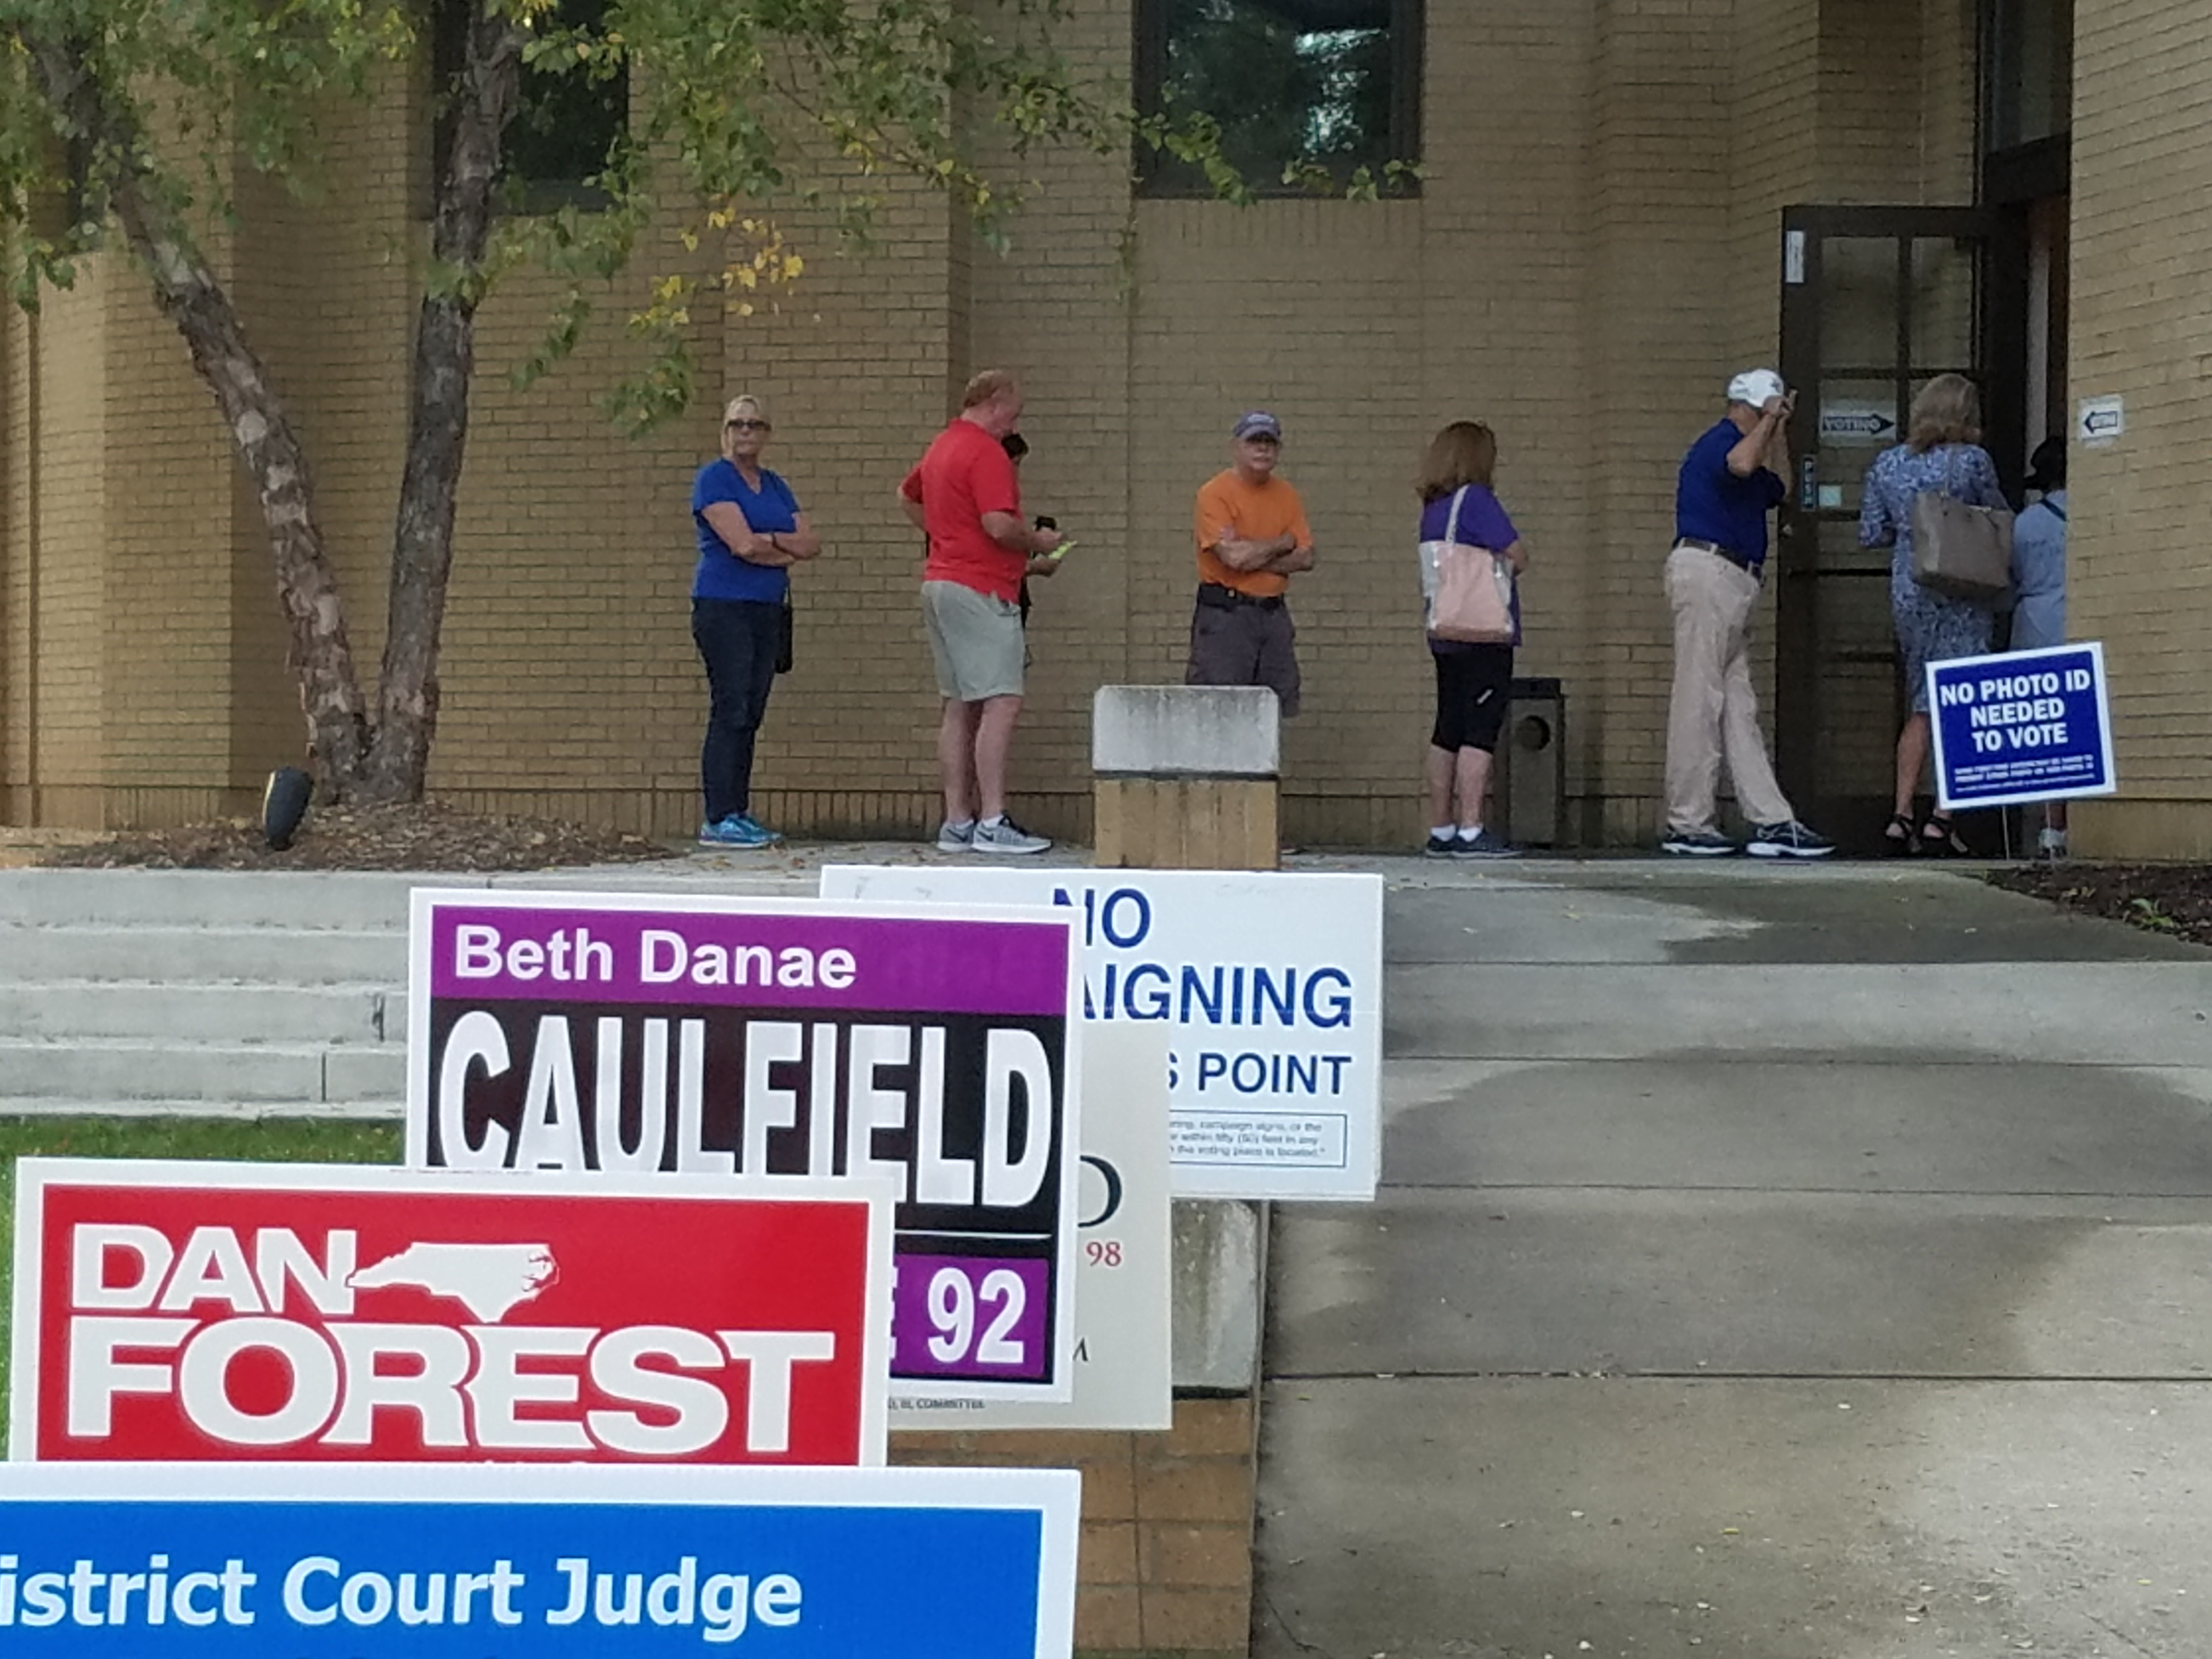 Early voting last year, sometimes there's a wait, sometimes there isn't